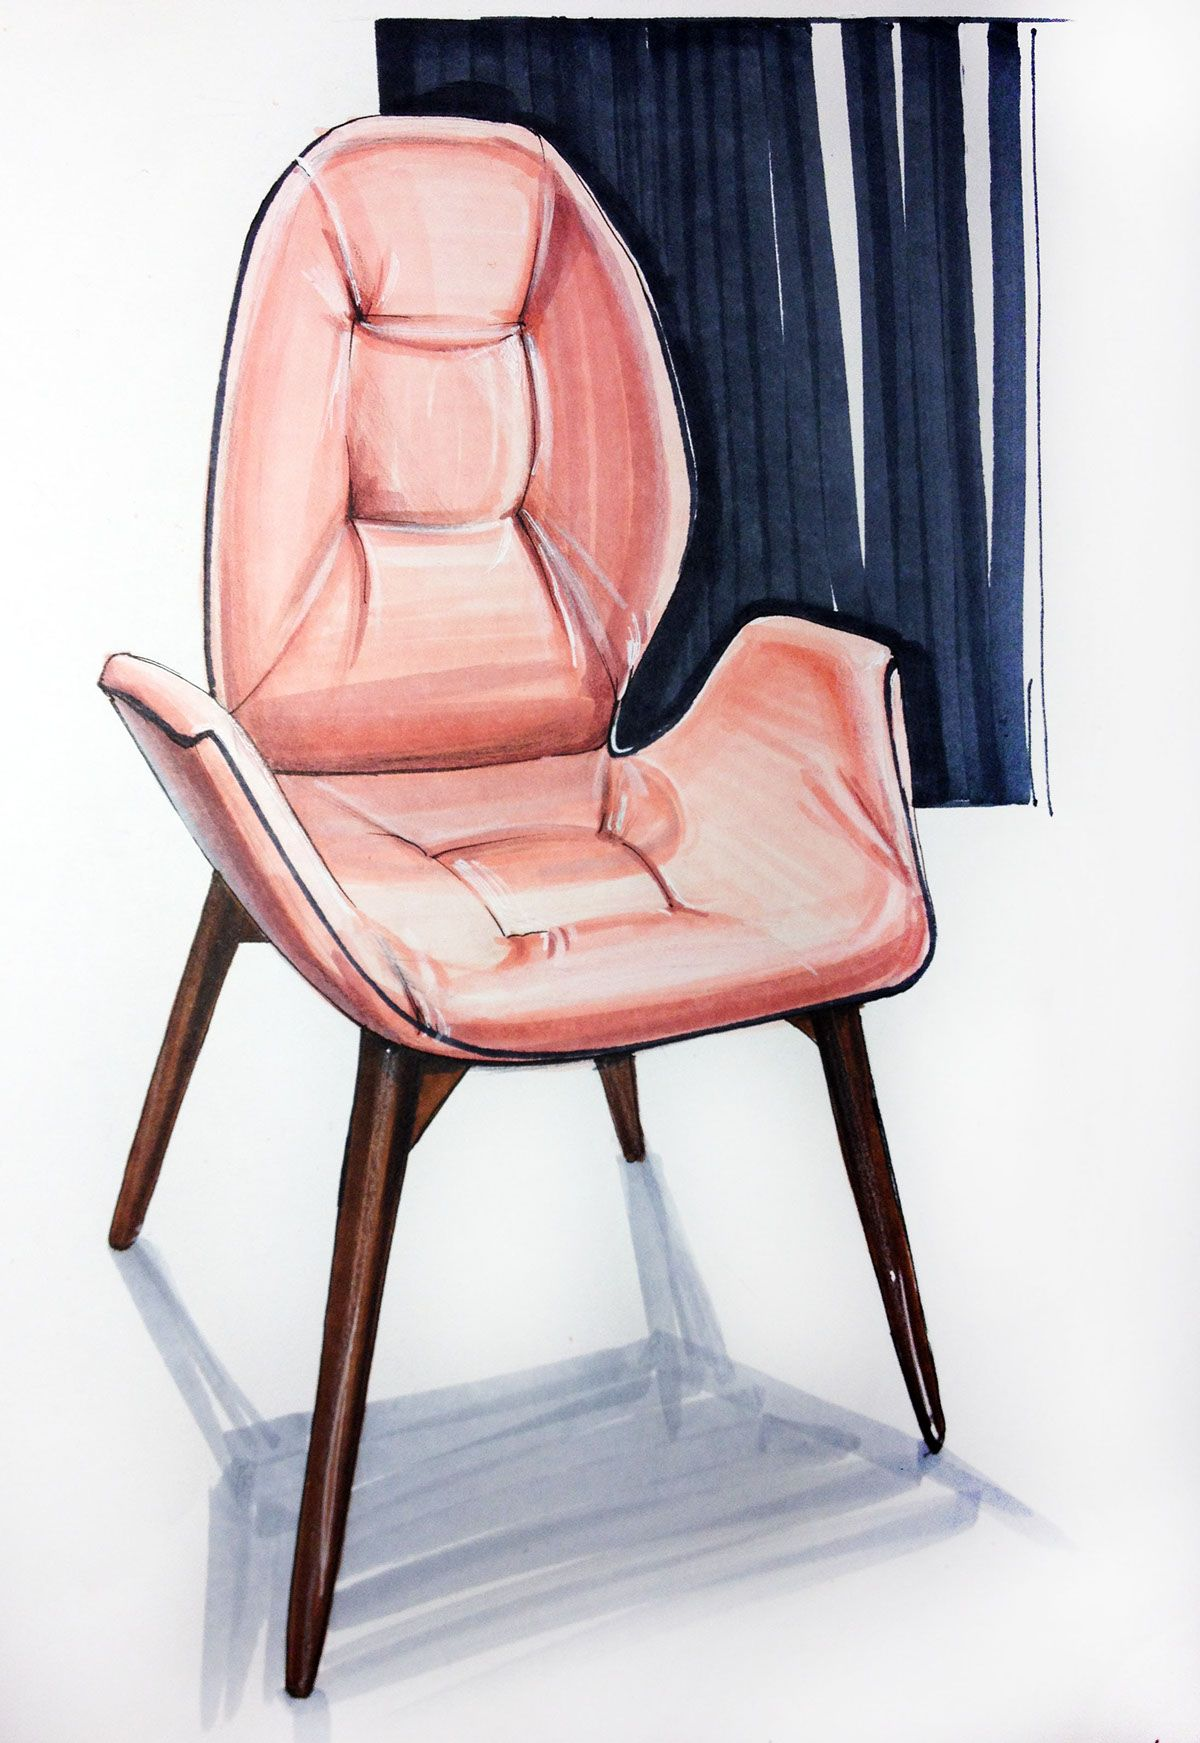 Chair sketch Quick 10min sketch of transparent Eames Less lines more realistic wrenchbone Sketch Pinterest